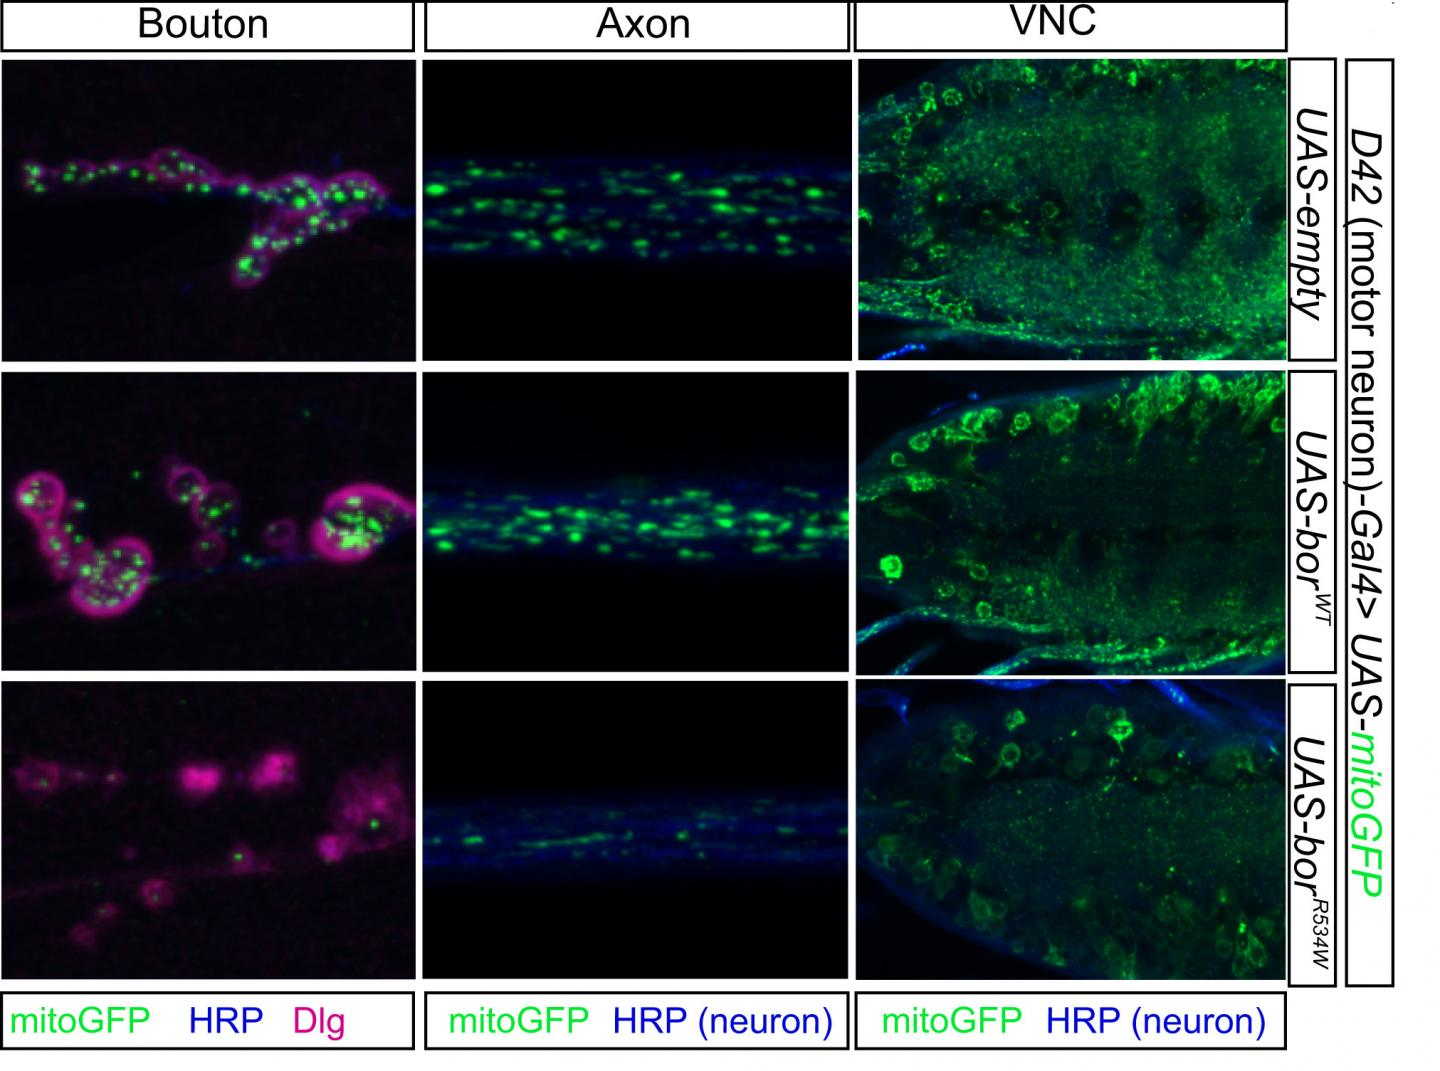 Variations in Gene ATAD3A Can Result in Less Mitochondria